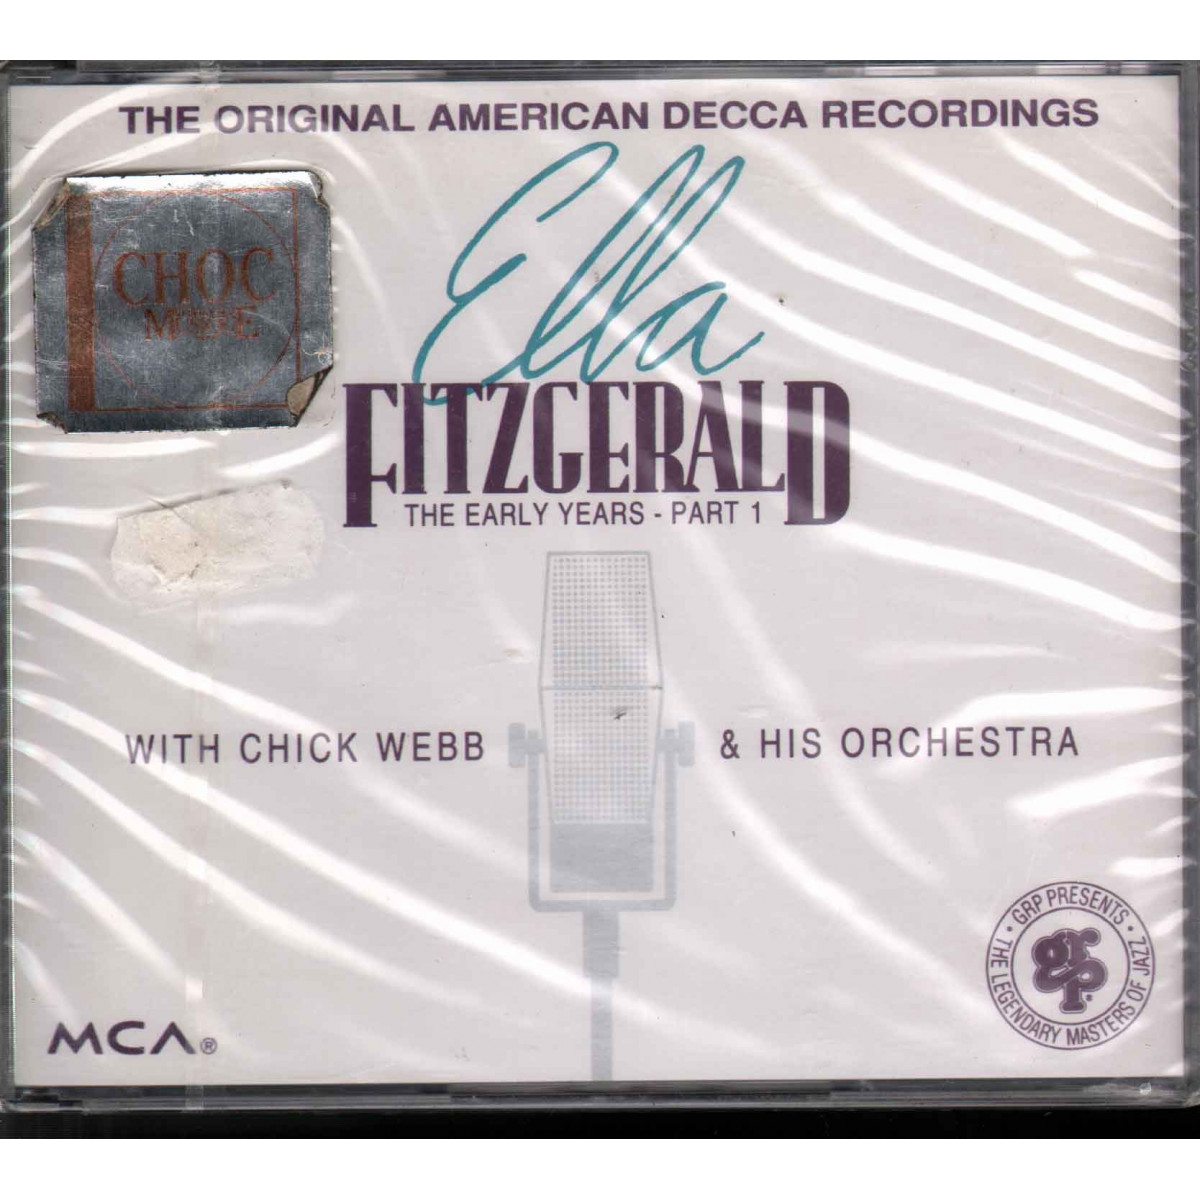 Ella Fitzgerald / Chick Webb CD The Early Years - Part 1 Sigillato 0011105261821